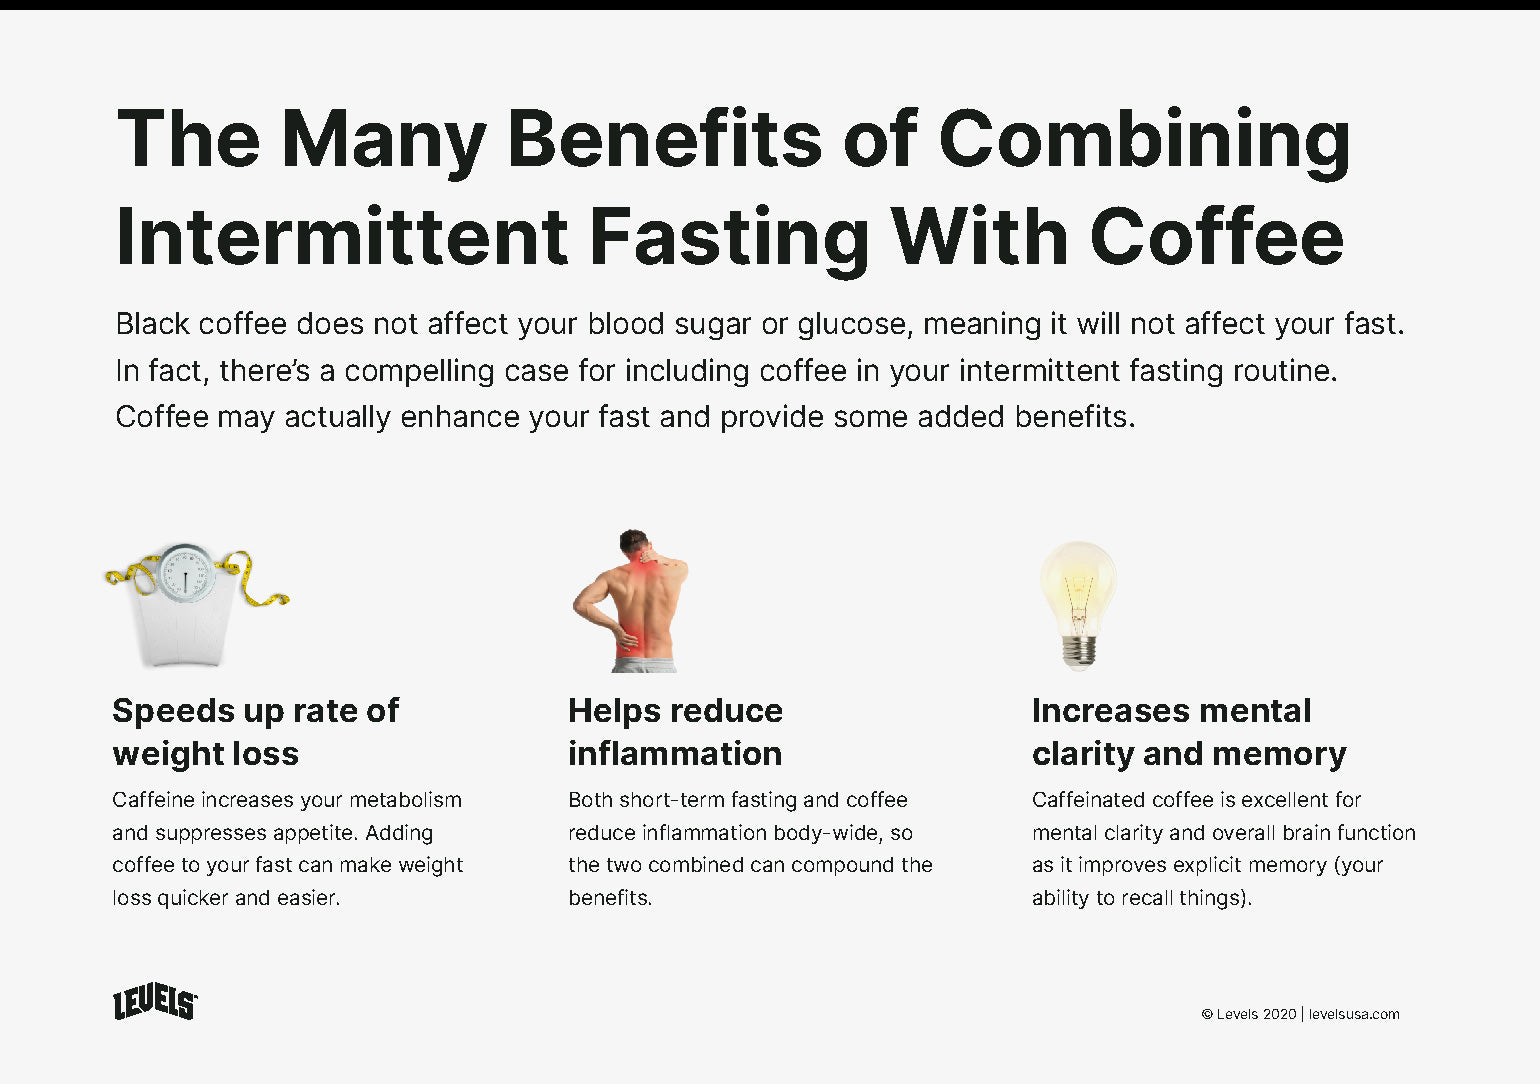 Benefits of Combining Intermittent Fasting With Coffee - Infographic